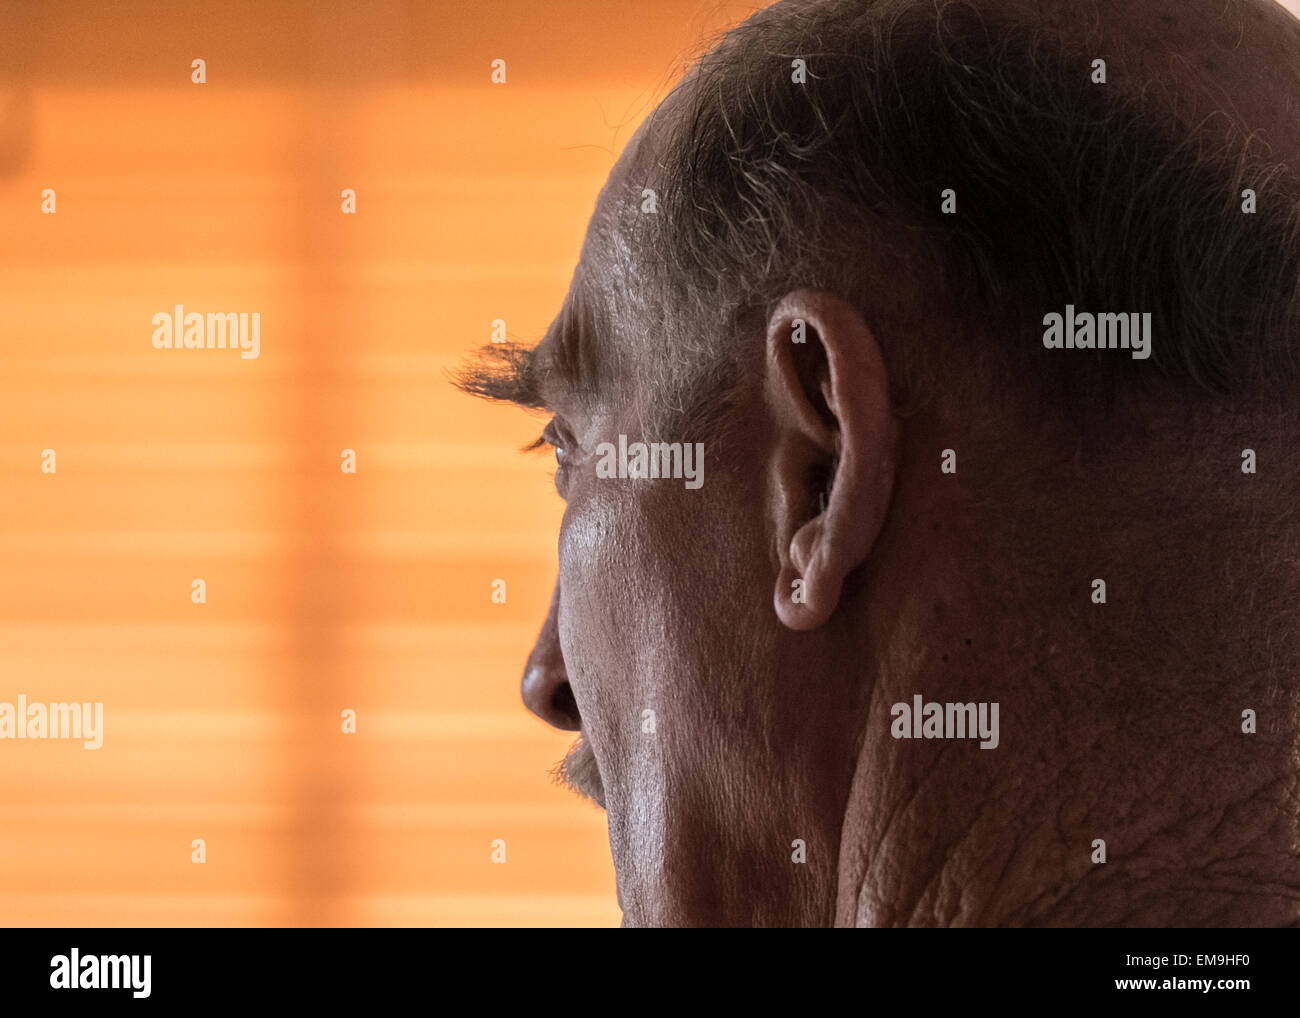 Head shot of an elderly man turned away, showing an extremely long, bushy eyebrow. Stock Photo